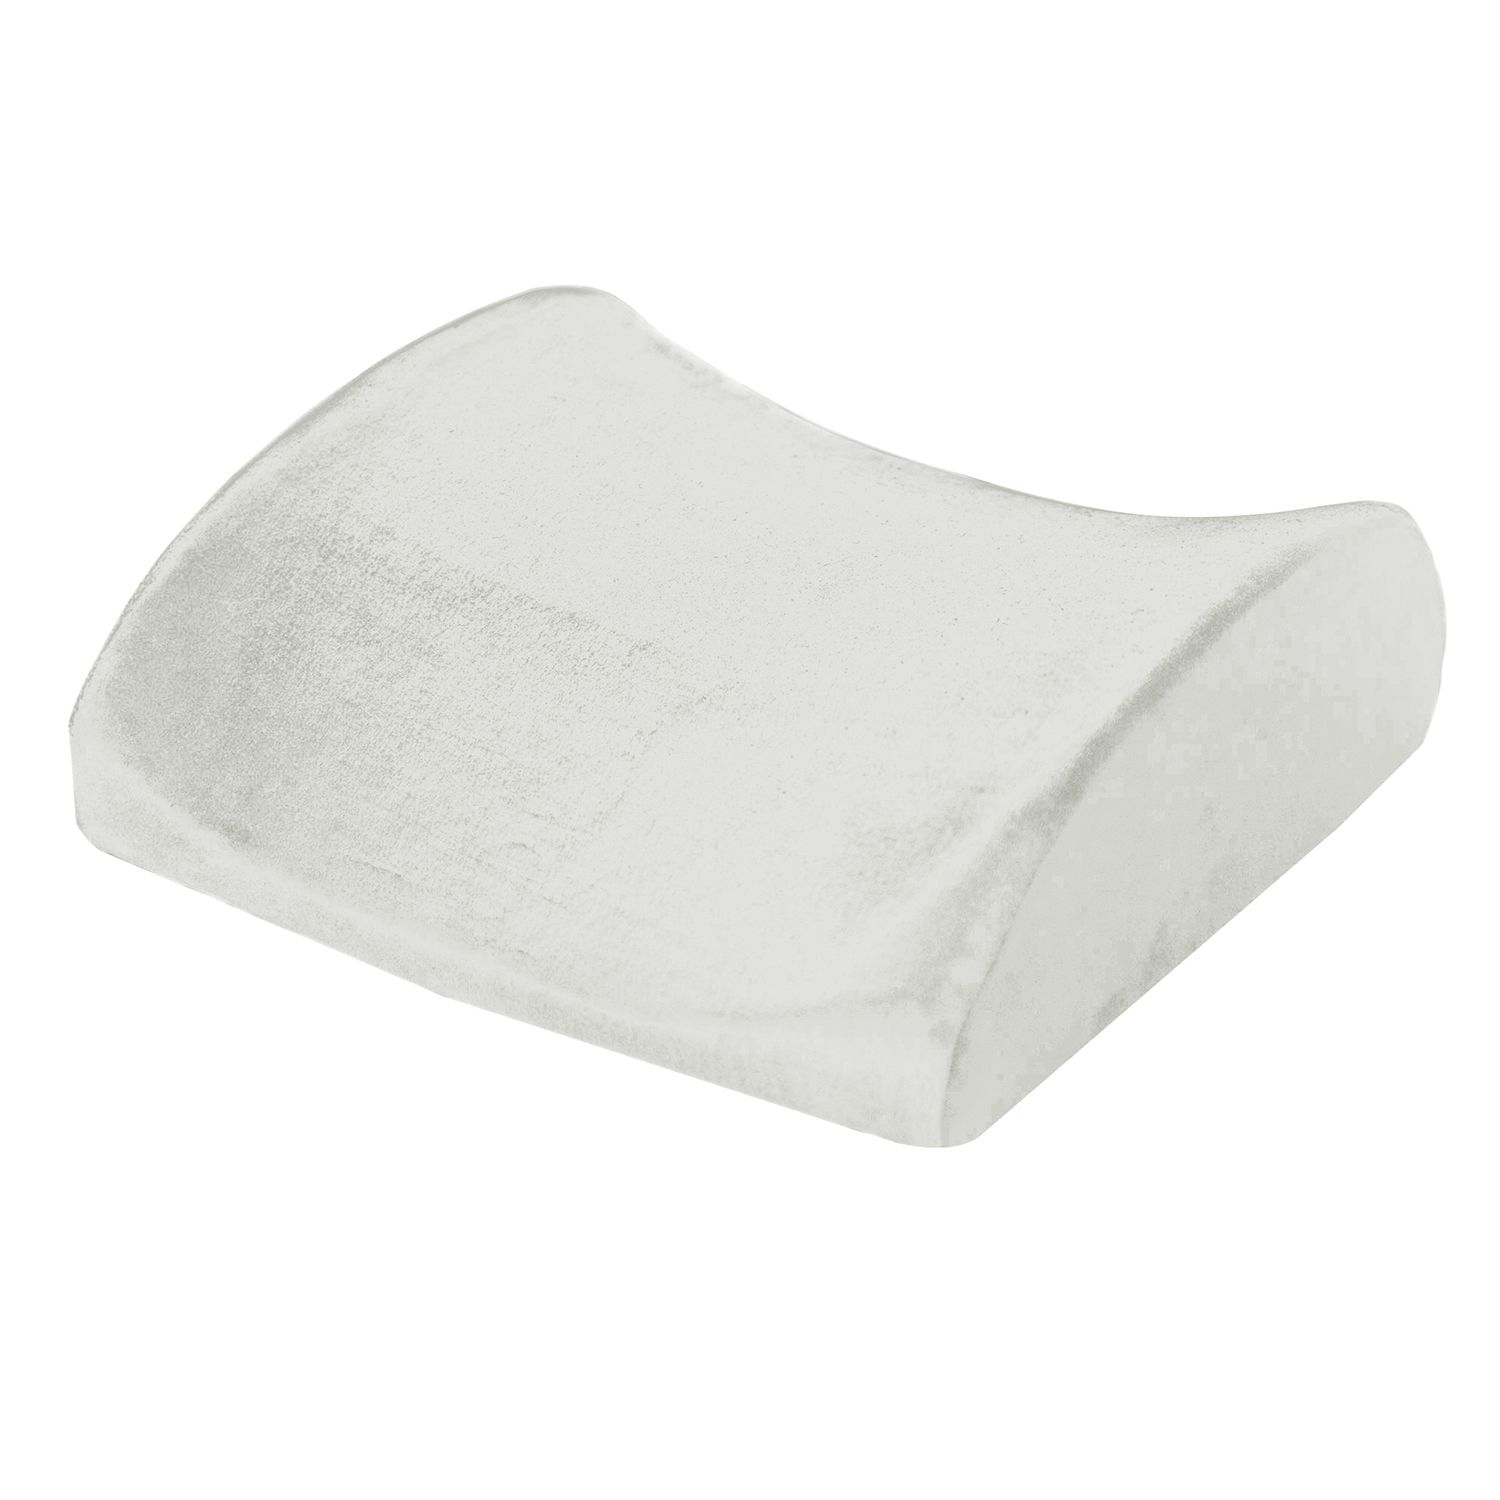 natural pedic lumbar support memory foam pillow